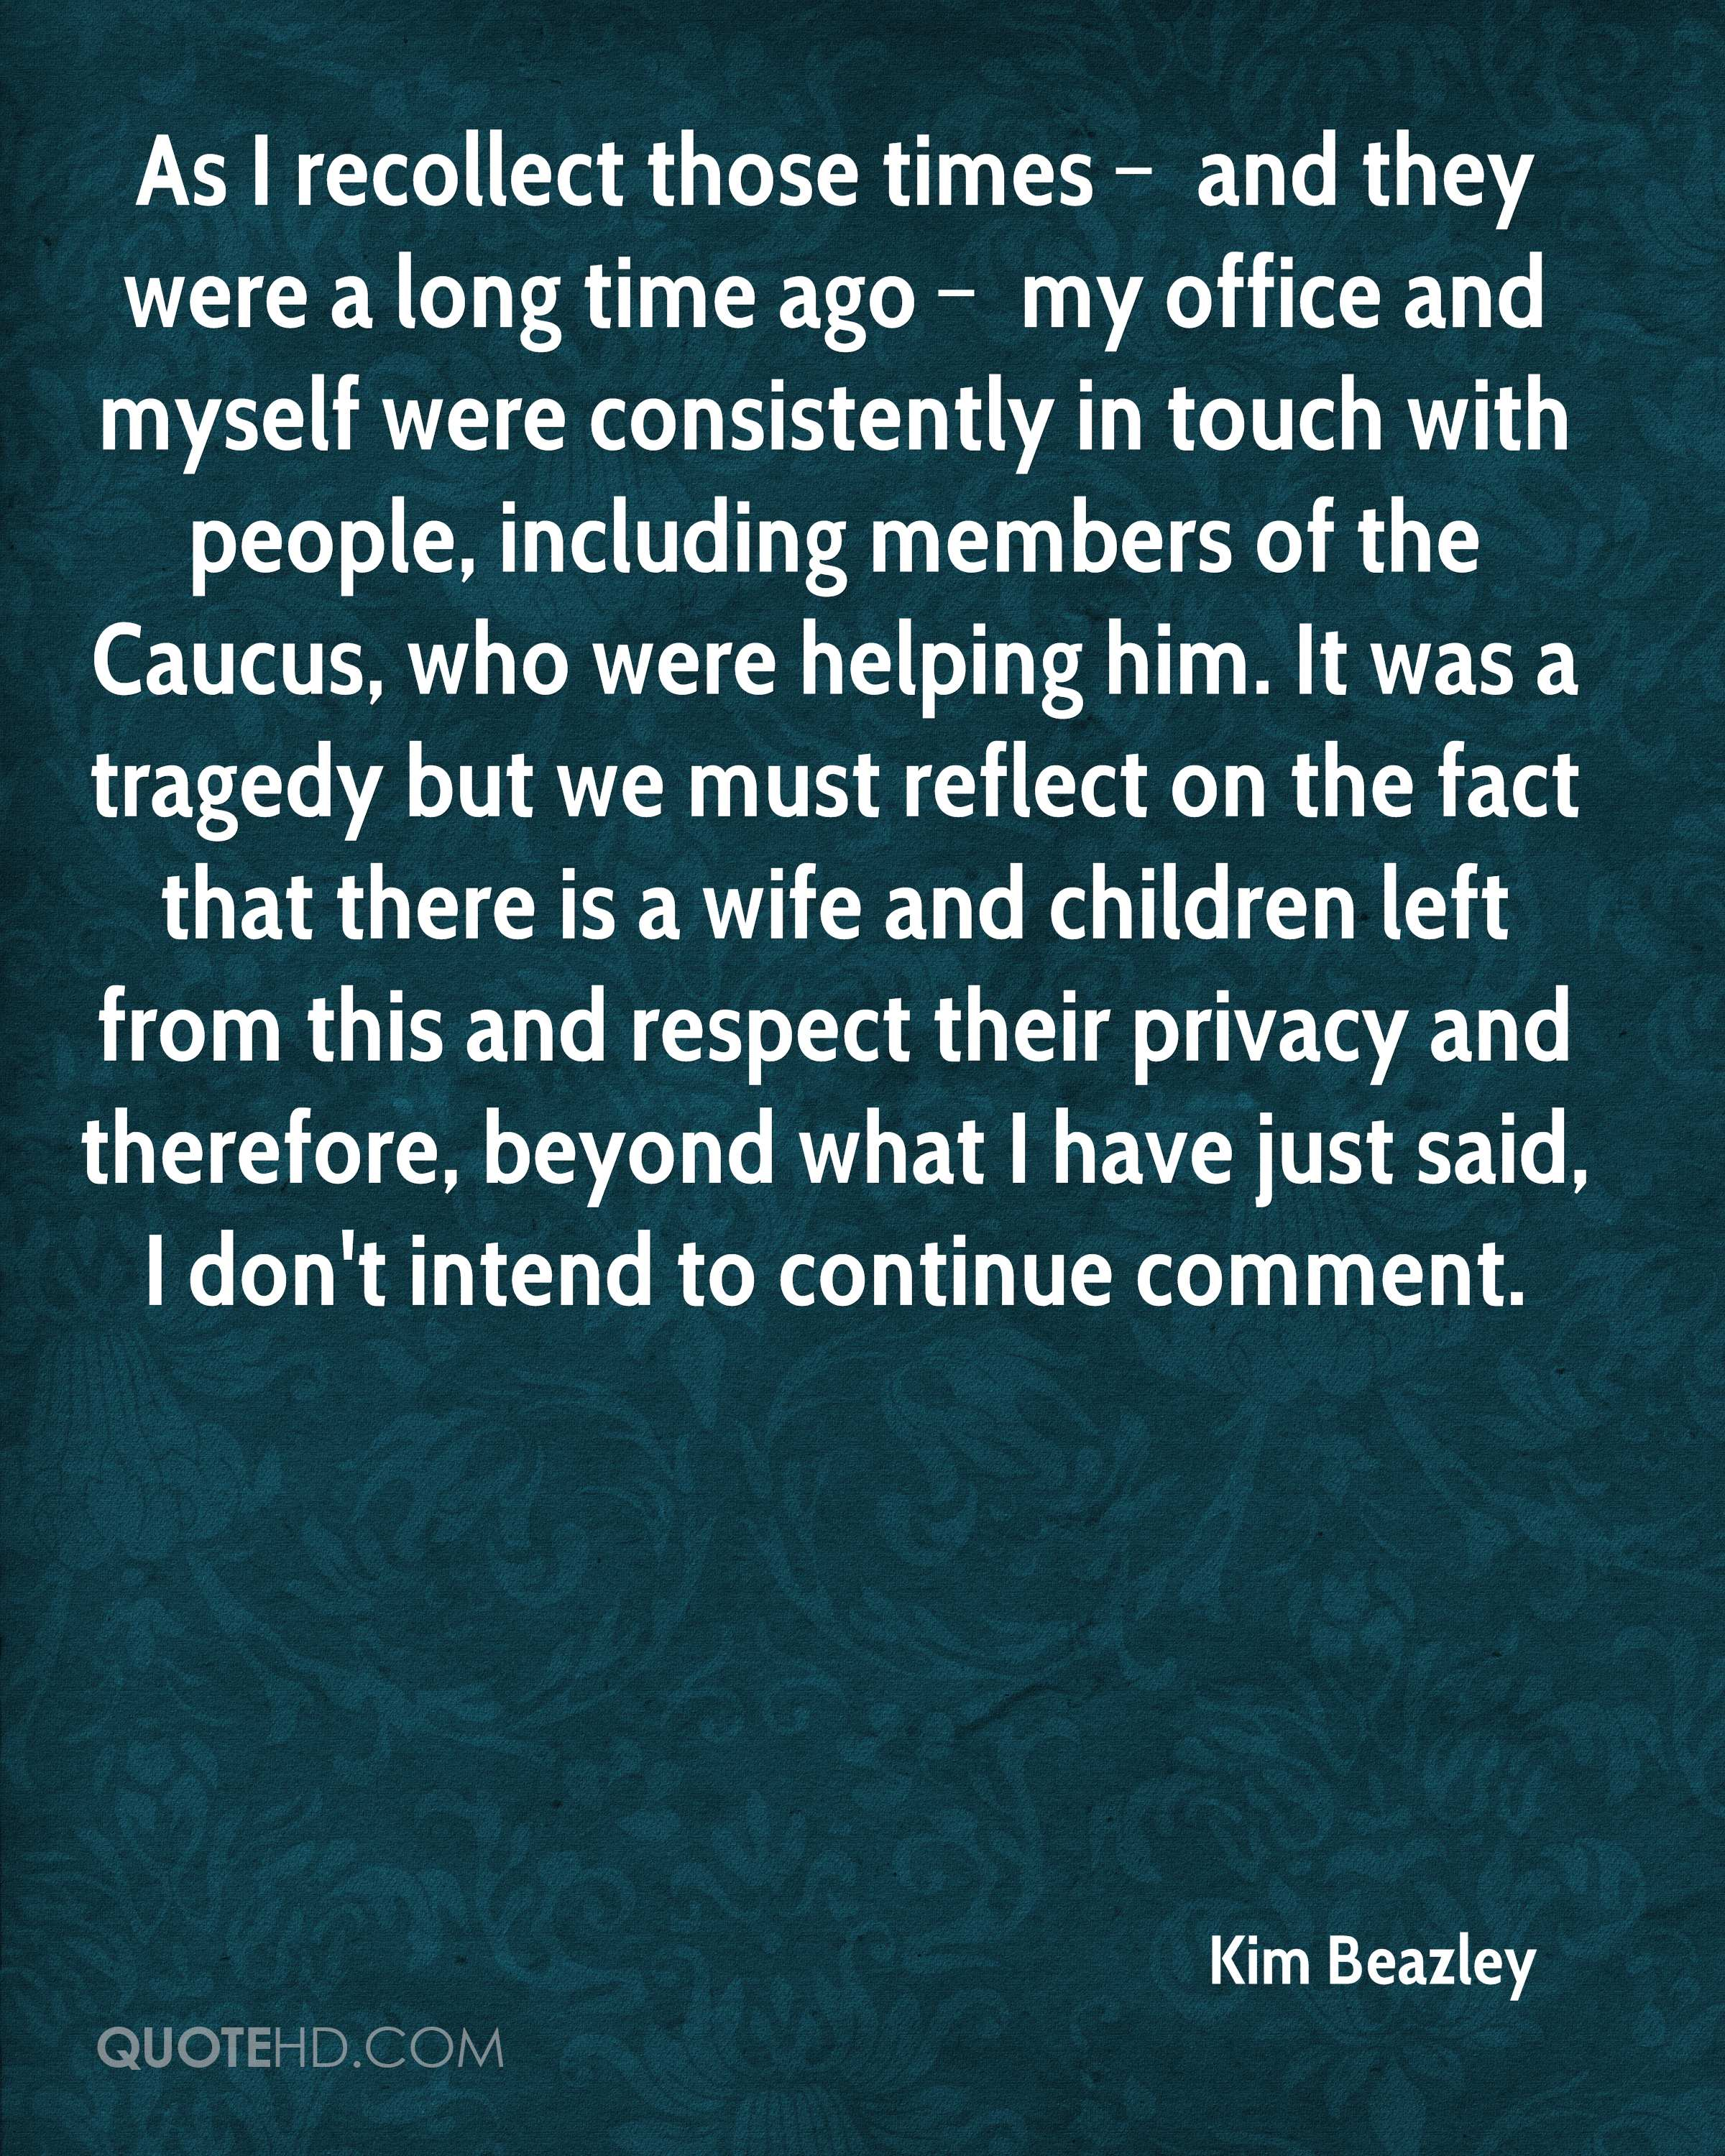 As I recollect those times – and they were a long time ago – my office and myself were consistently in touch with people, including members of the Caucus, who were helping him. It was a tragedy but we must reflect on the fact that there is a wife and children left from this and respect their privacy and therefore, beyond what I have just said, I don't intend to continue comment.